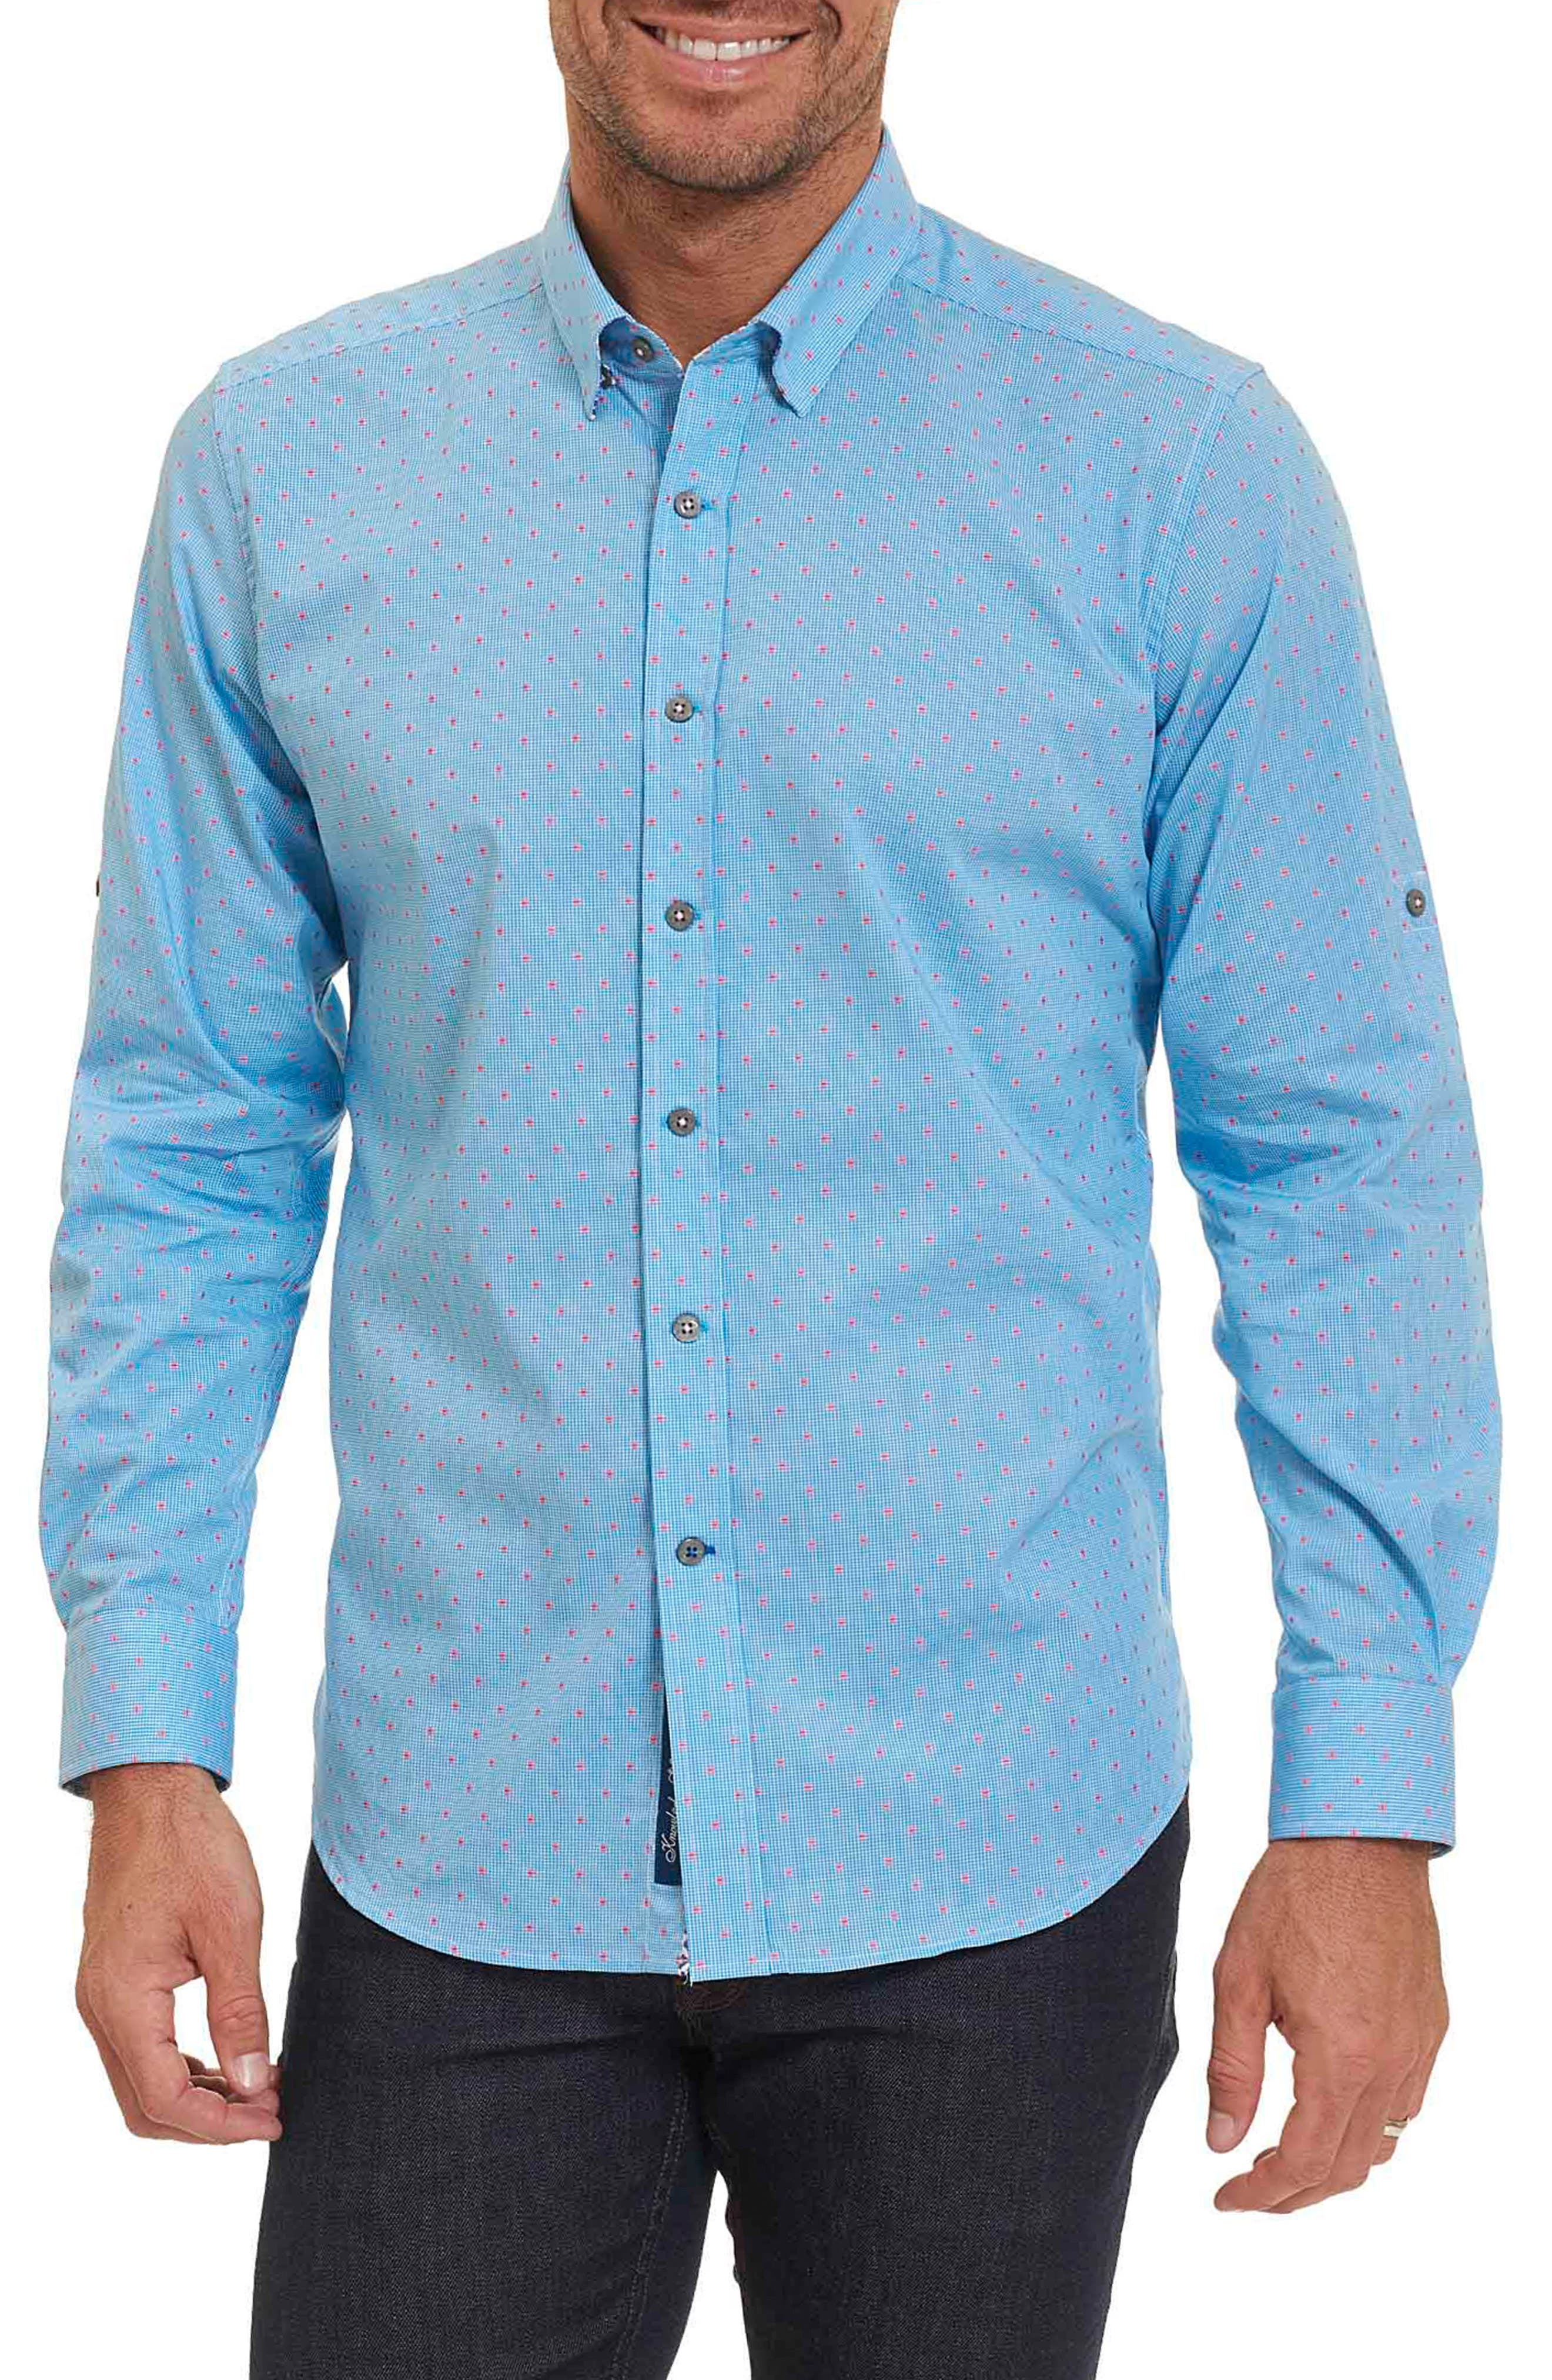 Carlos Tailored Fit Sport Shirt,                         Main,                         color,